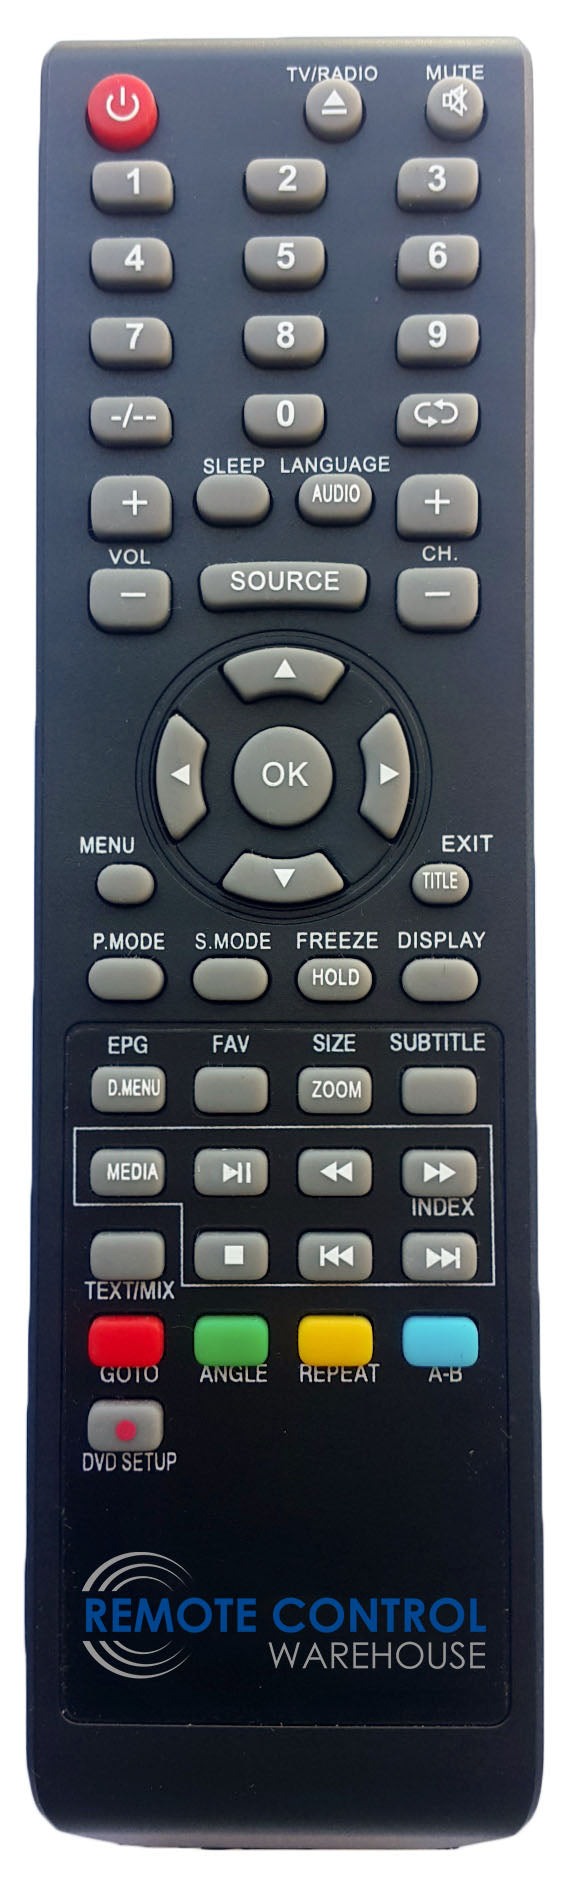 REPLACEMENT GVA REMOTE CONTROL - GVA26LEDCP  LCD TV - Remote Control Warehouse